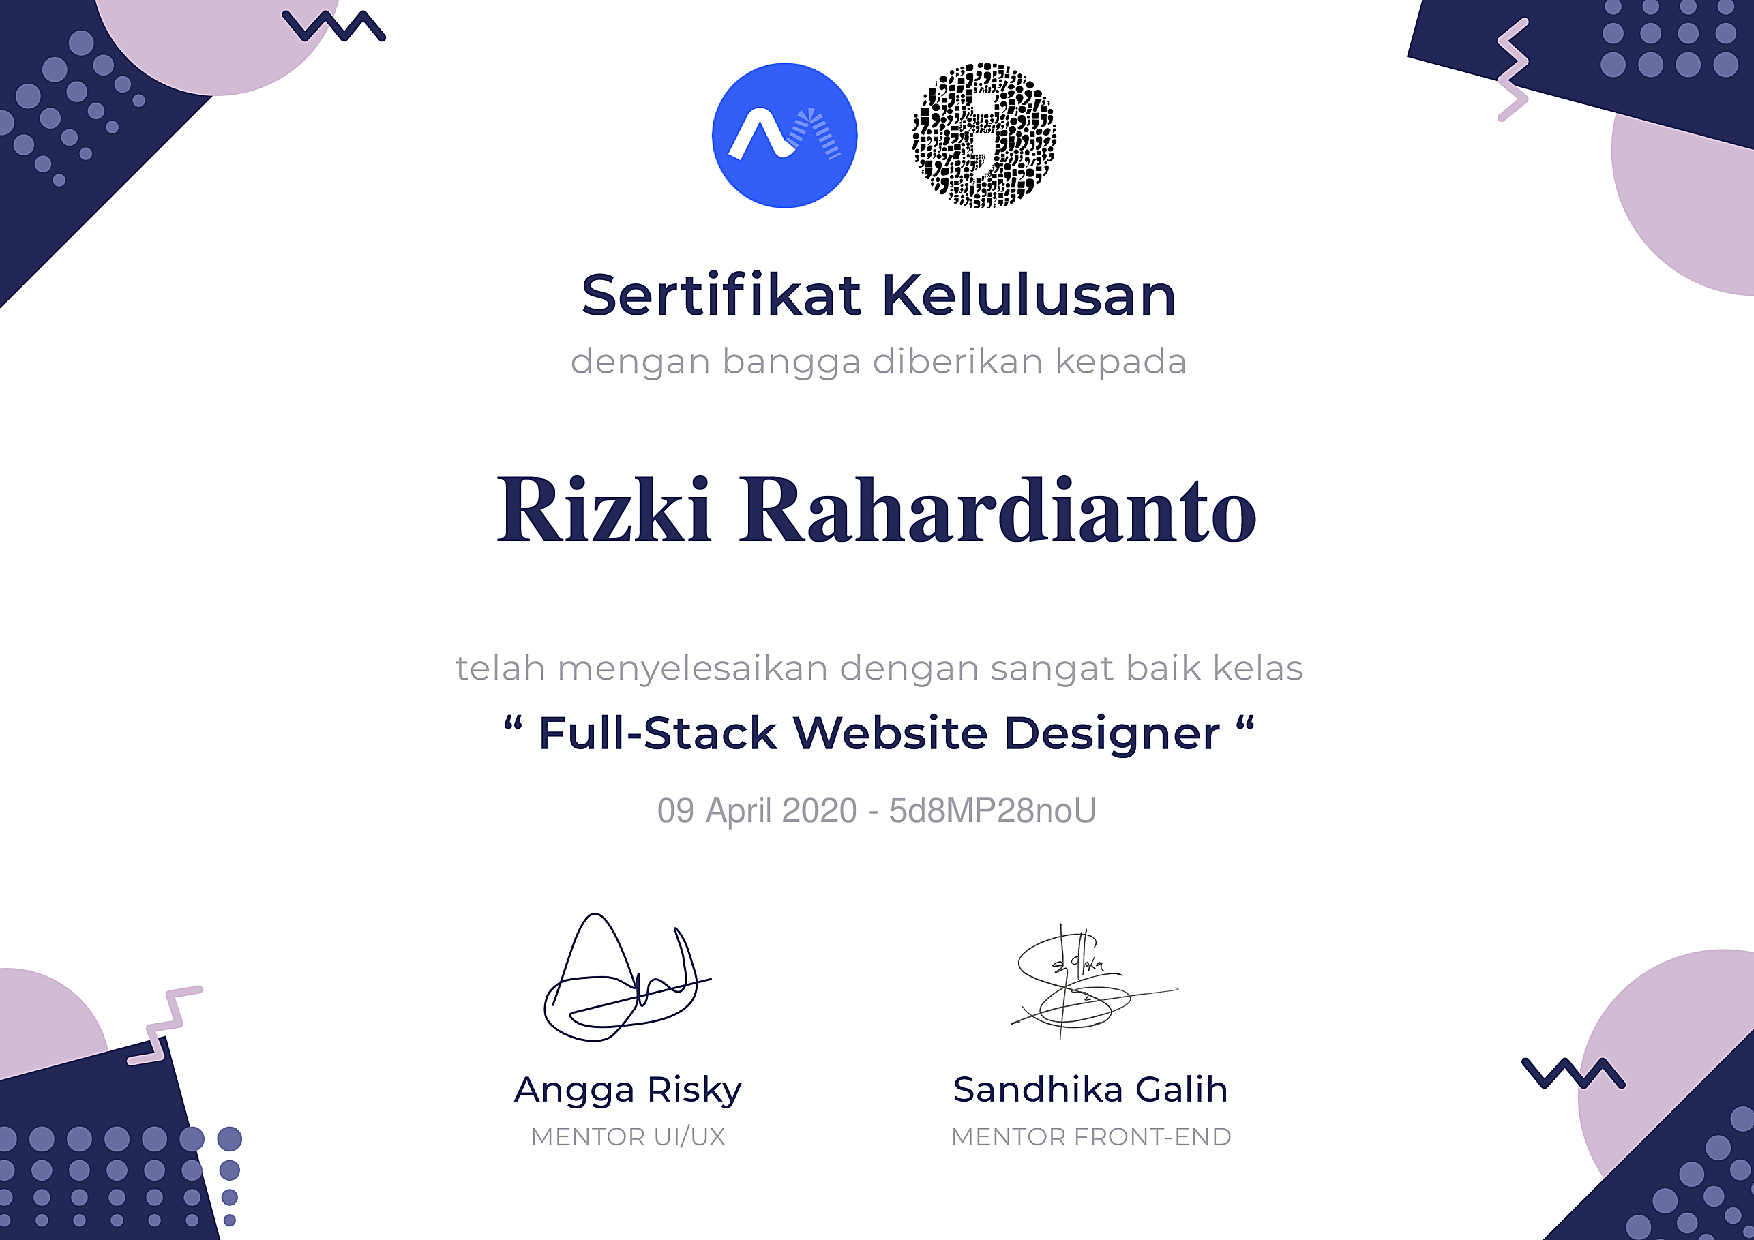 Full-Stack Web Designer